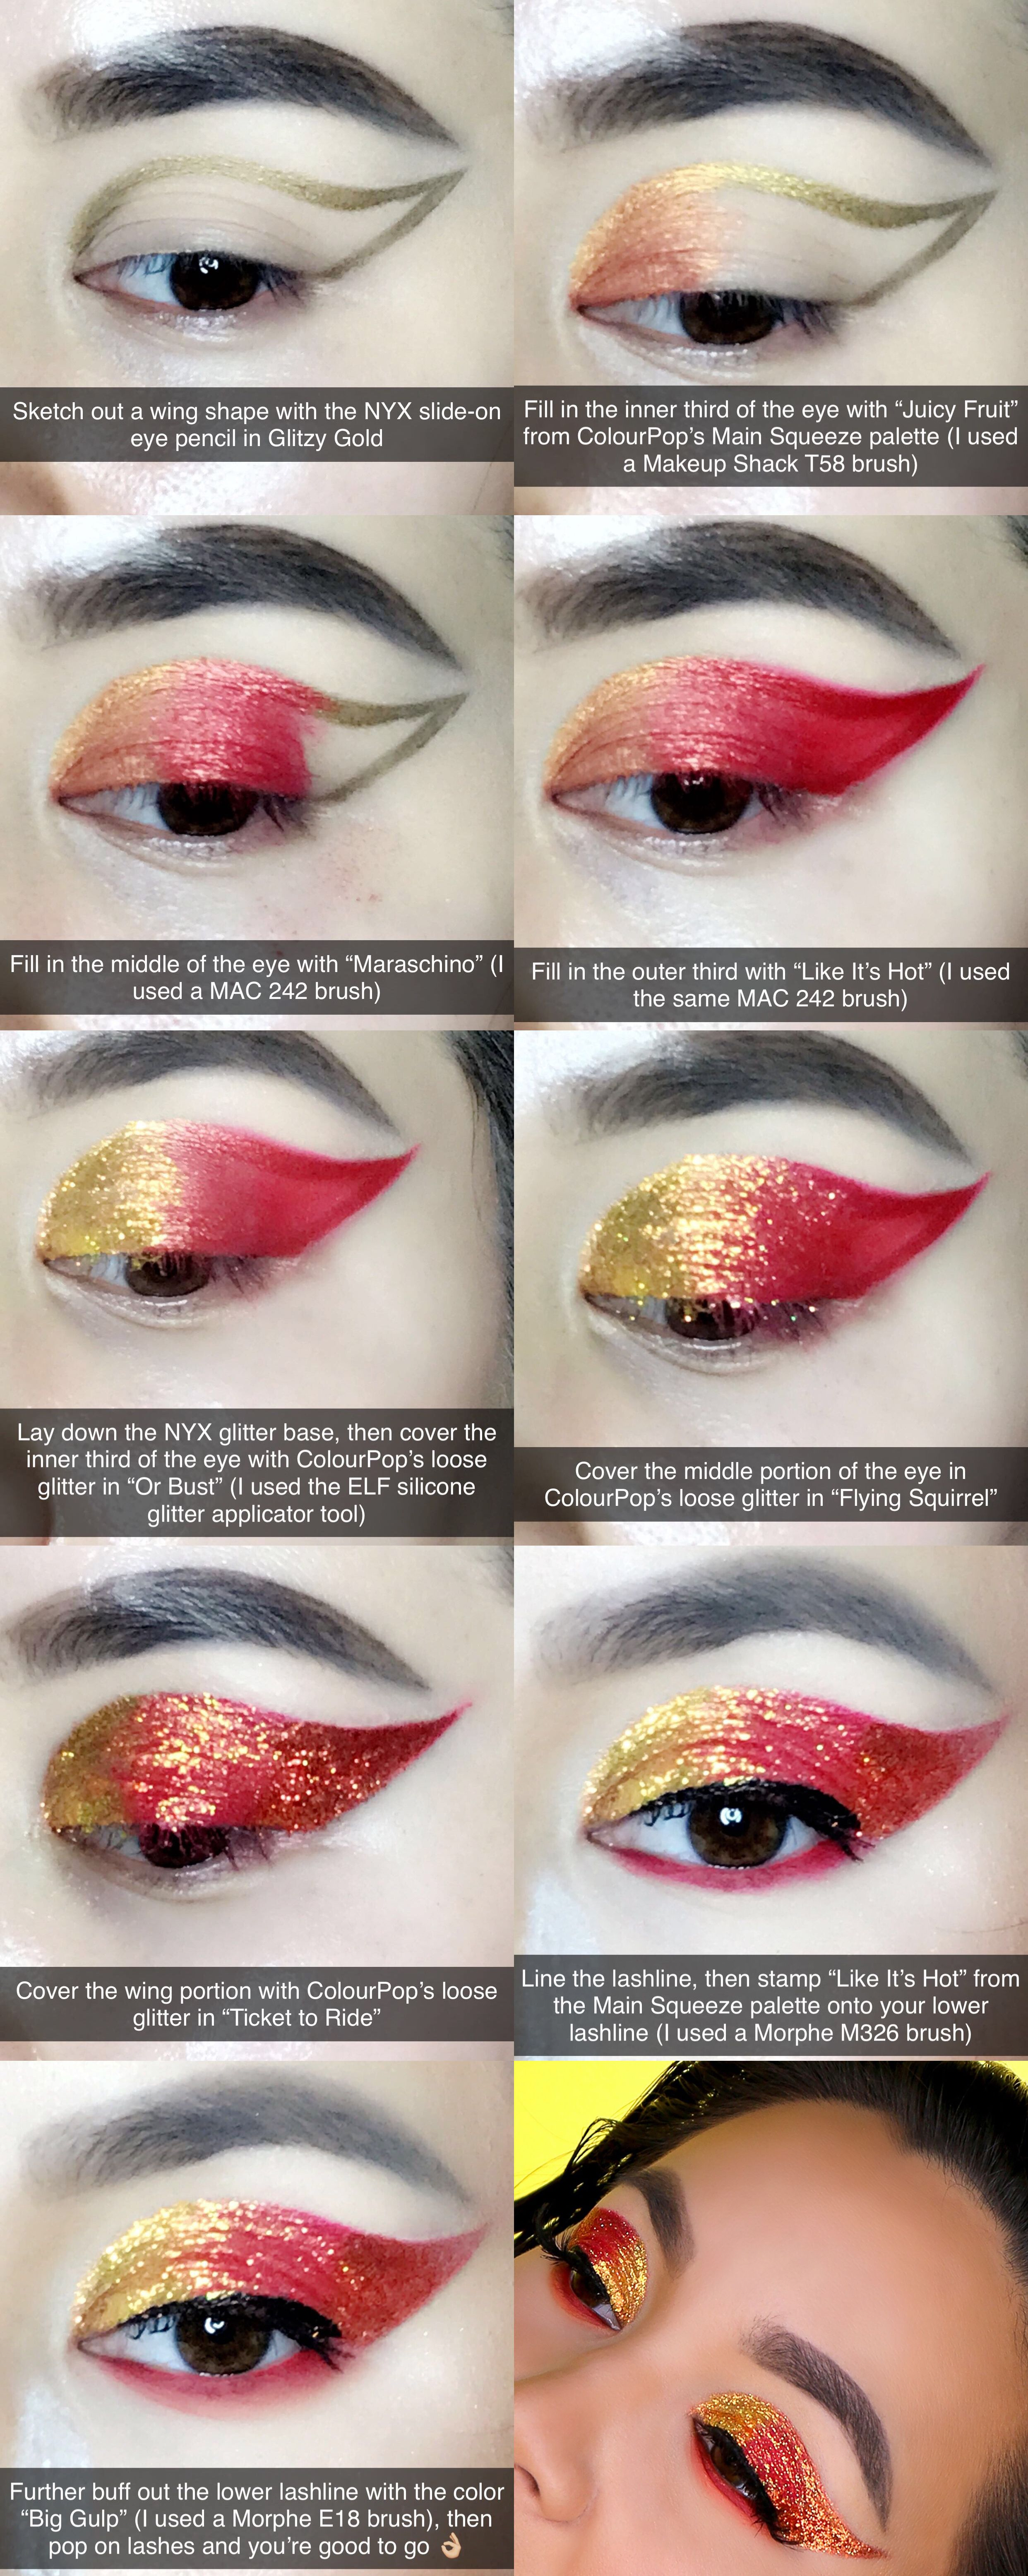 Here's a stepbystep tutorial of a glitter winged